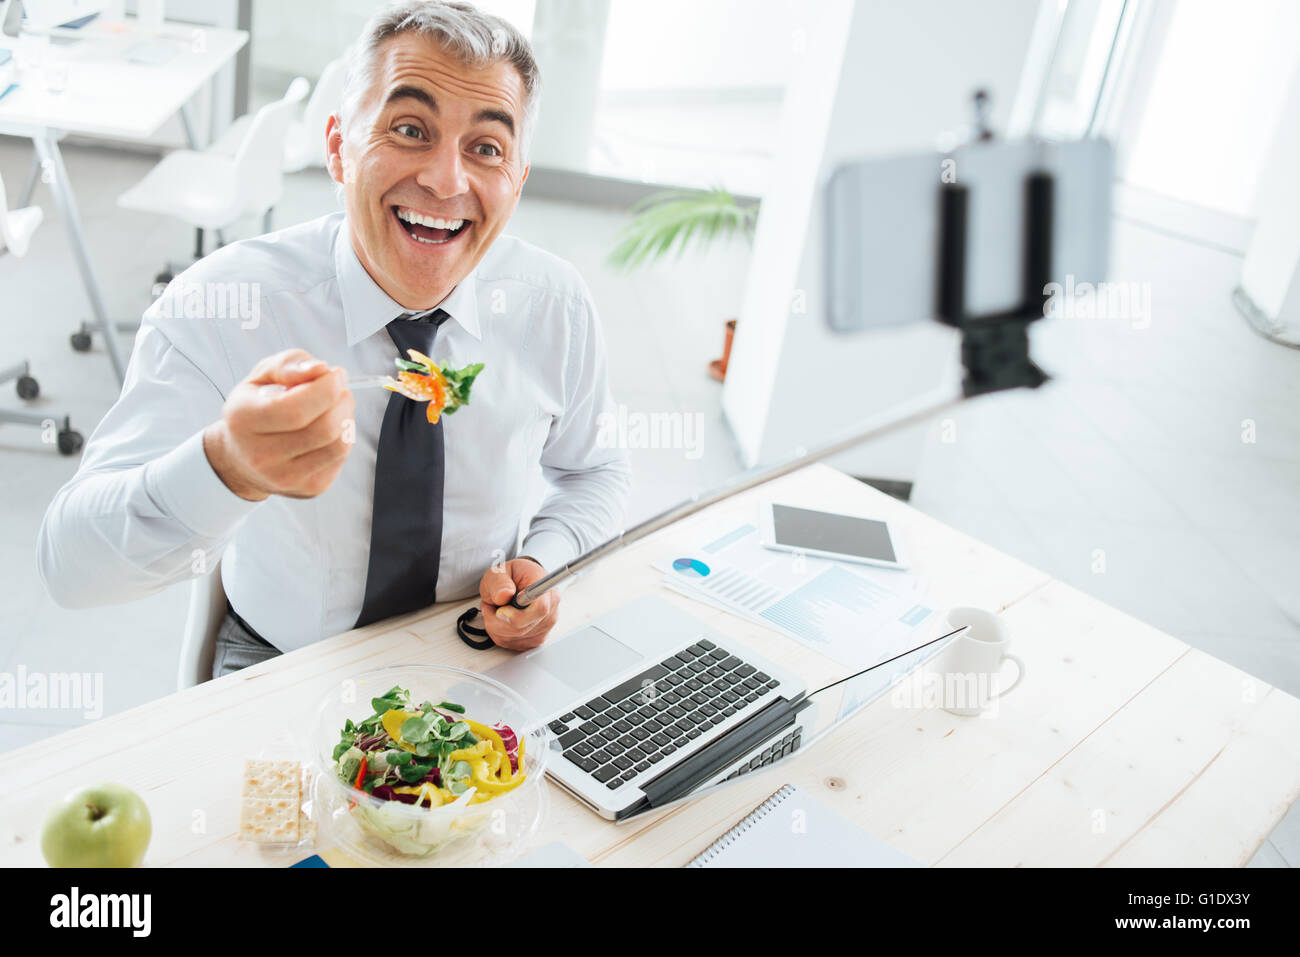 Happy smiling businessman at office desk having a lunch break and taking selfies with a selfie stick and a smart - Stock Image